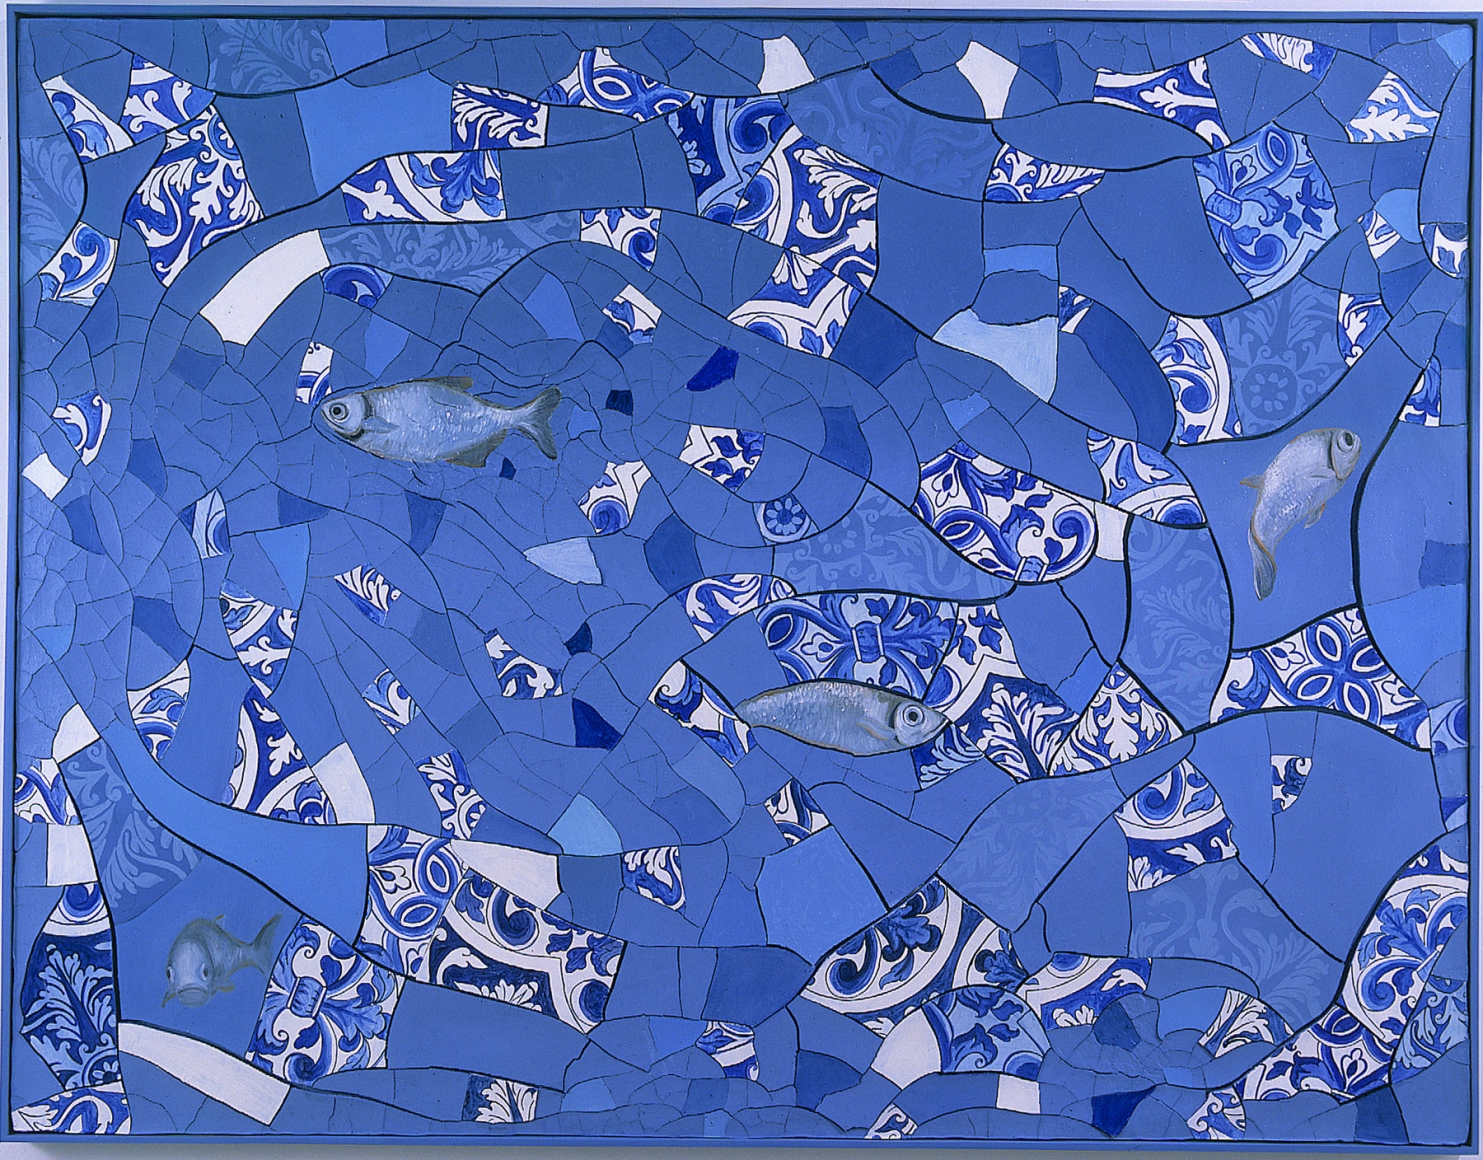 ADRIANA VAREJÃO, Cacos e Peixes (Fragments and Fish), 1999